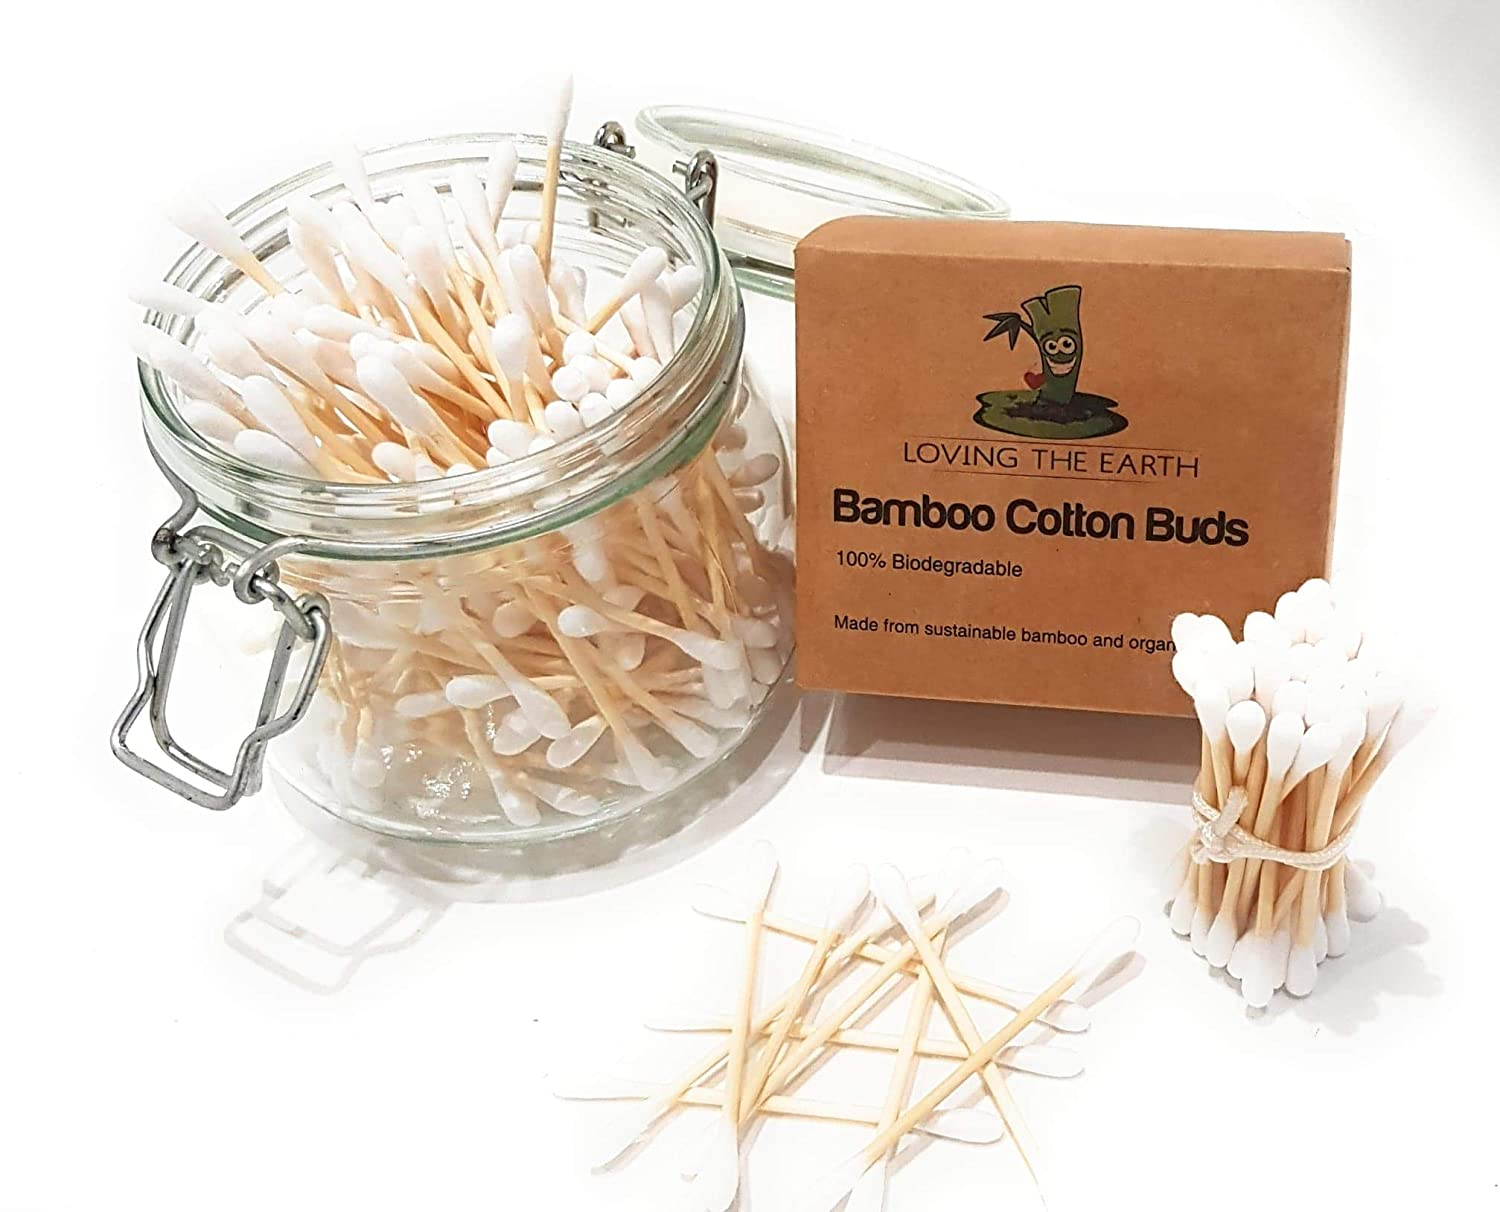 Bamboo Cotton Buds 800 Eco-Friendly 4 Boxes Loving The Earth. Q Tip Cotton Swabs Made from Organically Grown Bamboo /& Cotton 100/% Natural BPA Free Durable /& Compostable Ear Buds